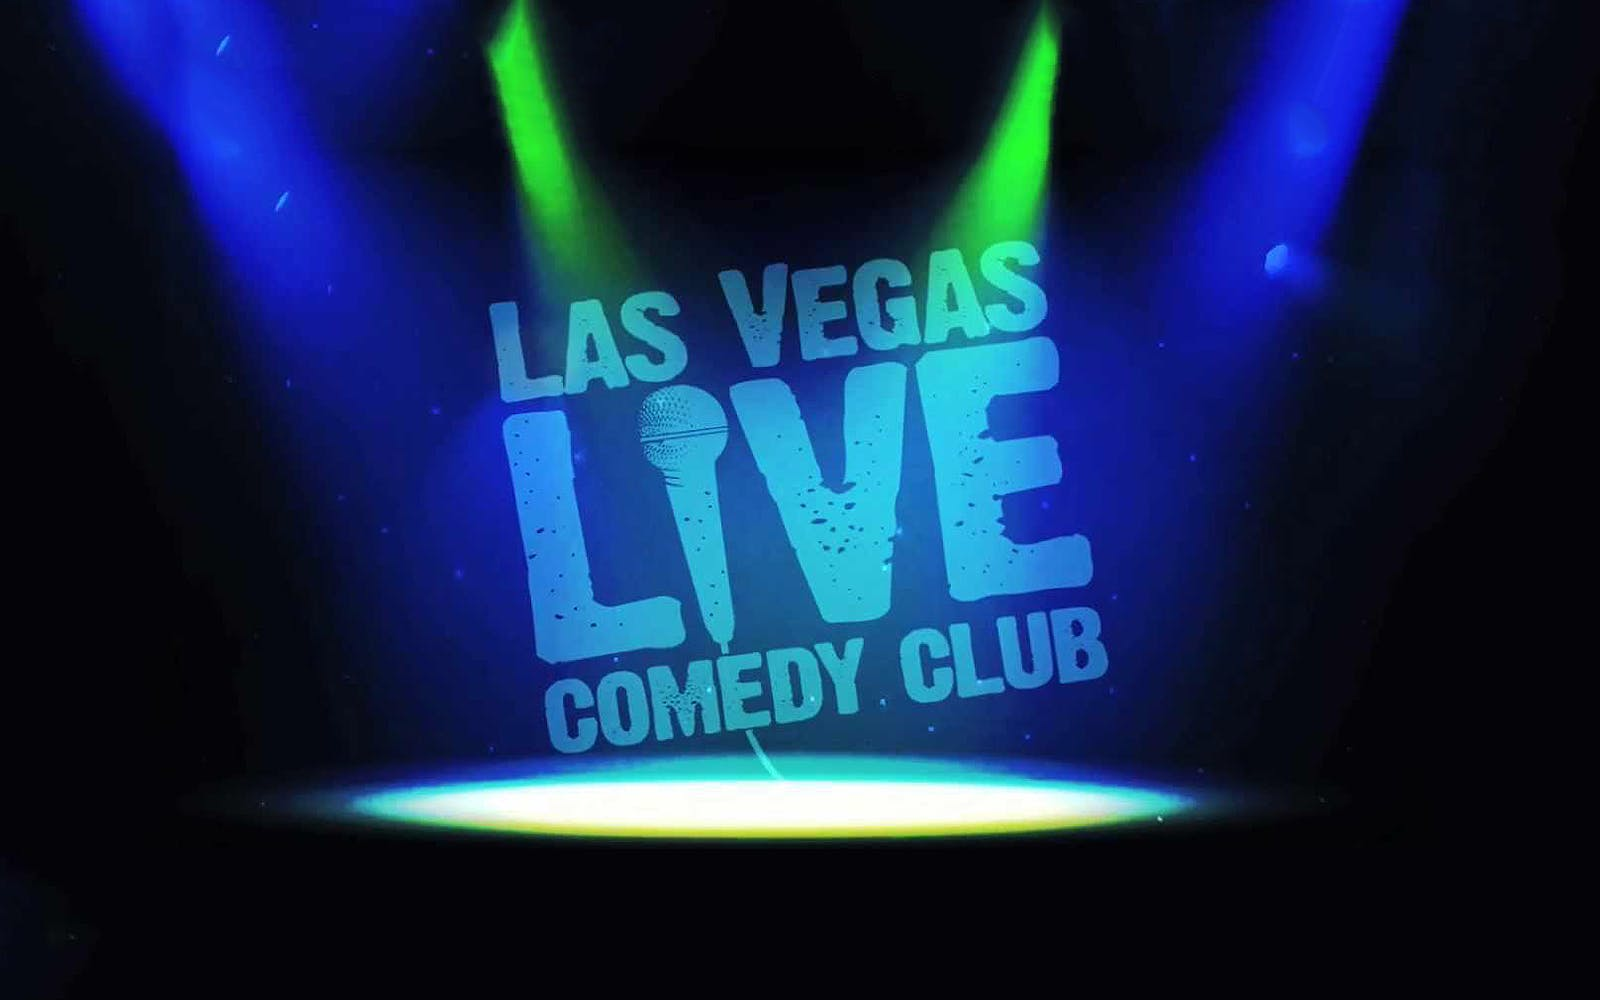 las vegas live comedy club-1